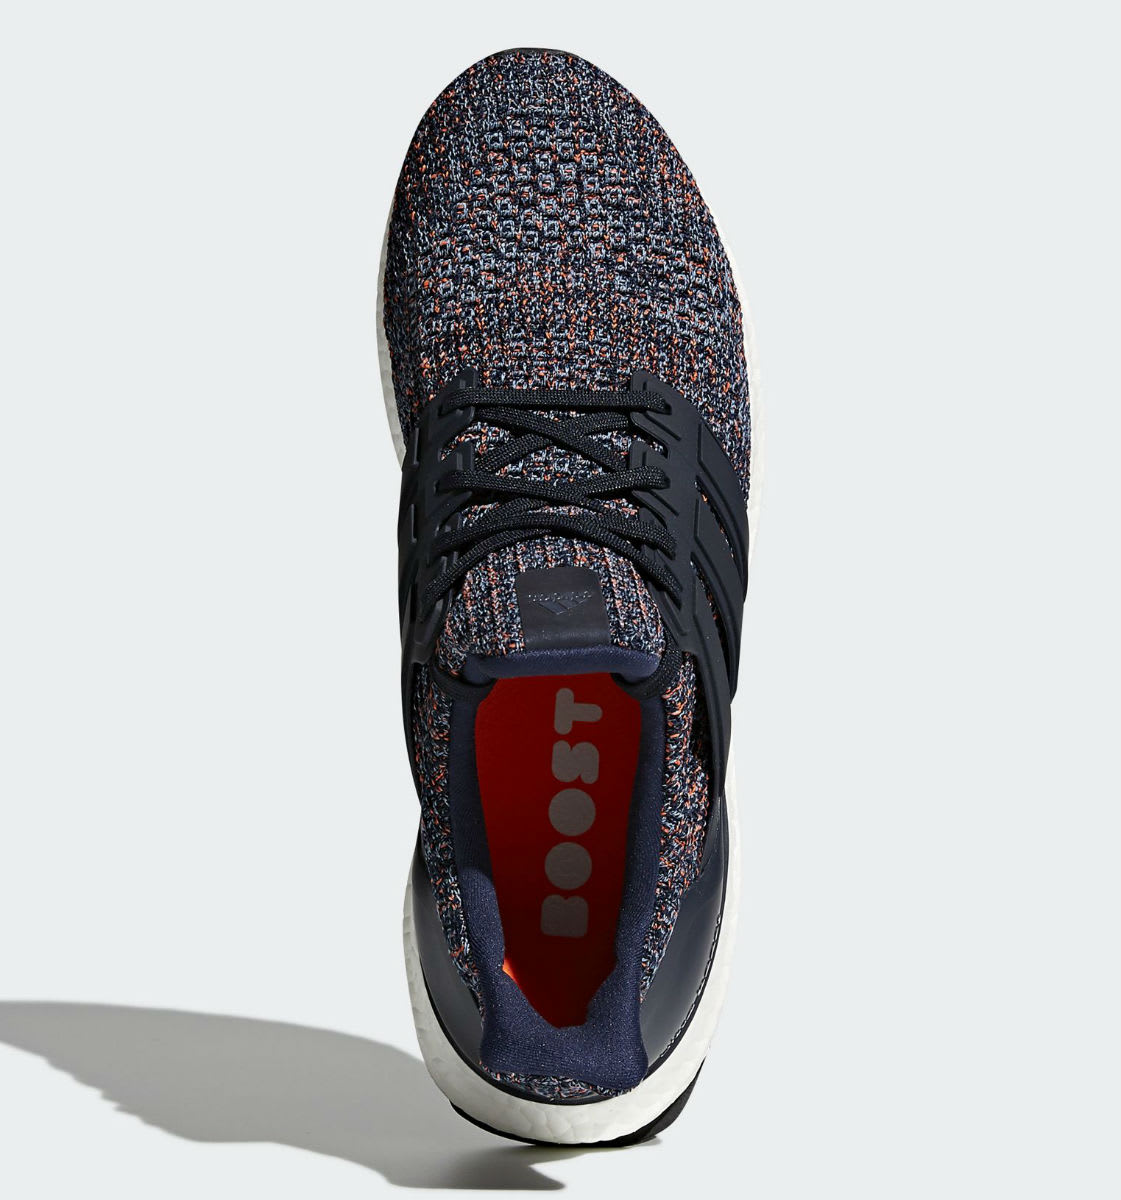 Adidas Ultra Boost Navy Multicolor BB6165 Release Date Top